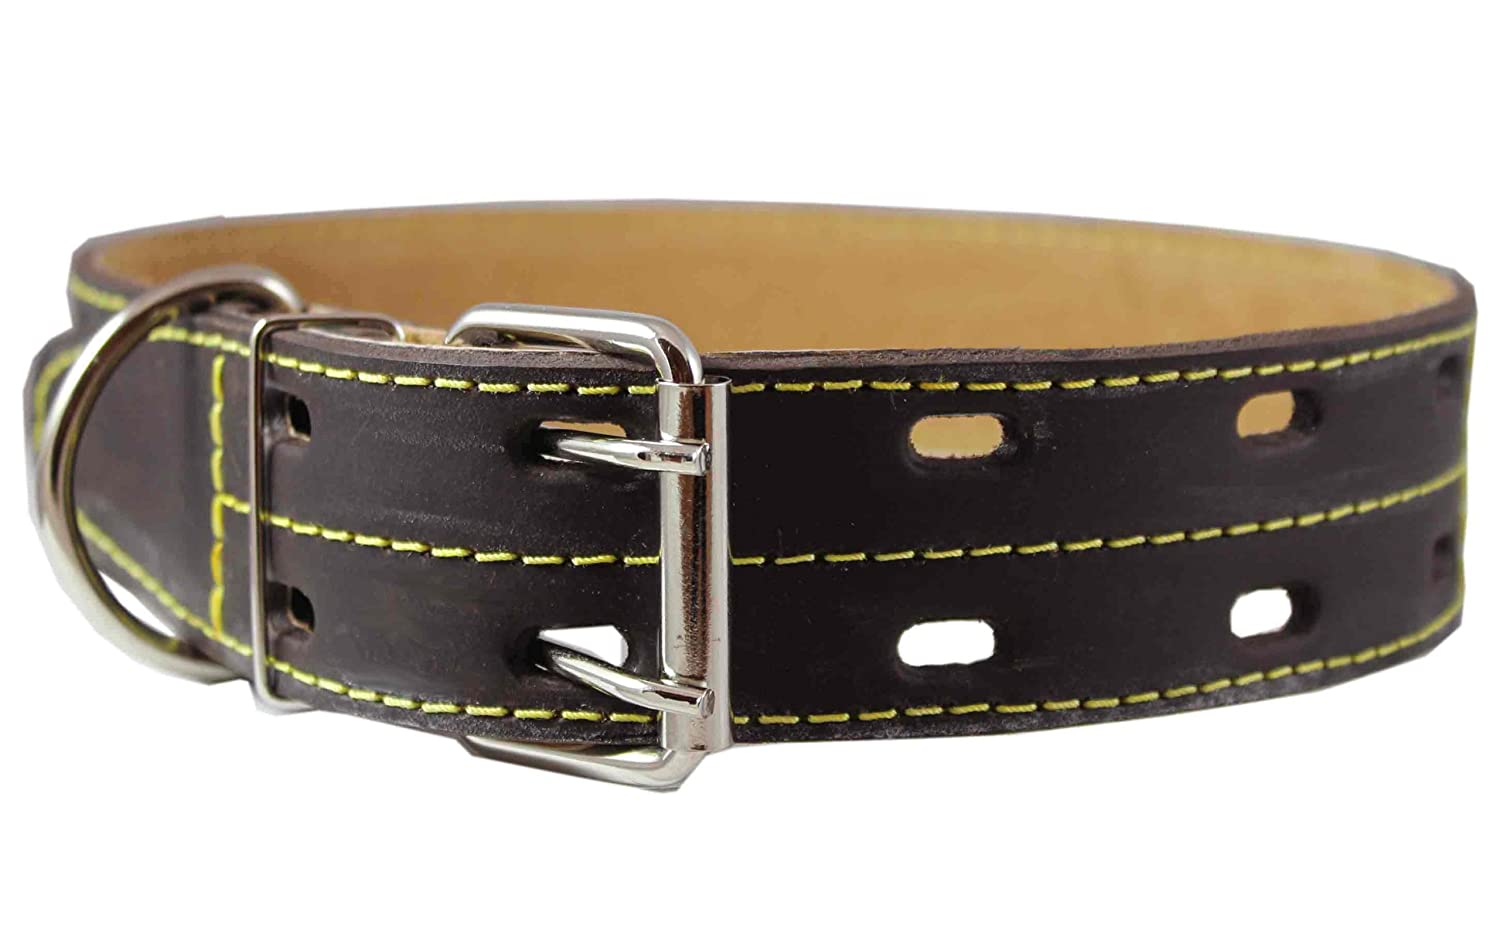 Genuine Thick Leather Dog Collar 20-27 Neck Size 1.75 Wide Brown Mastiff Great Dane